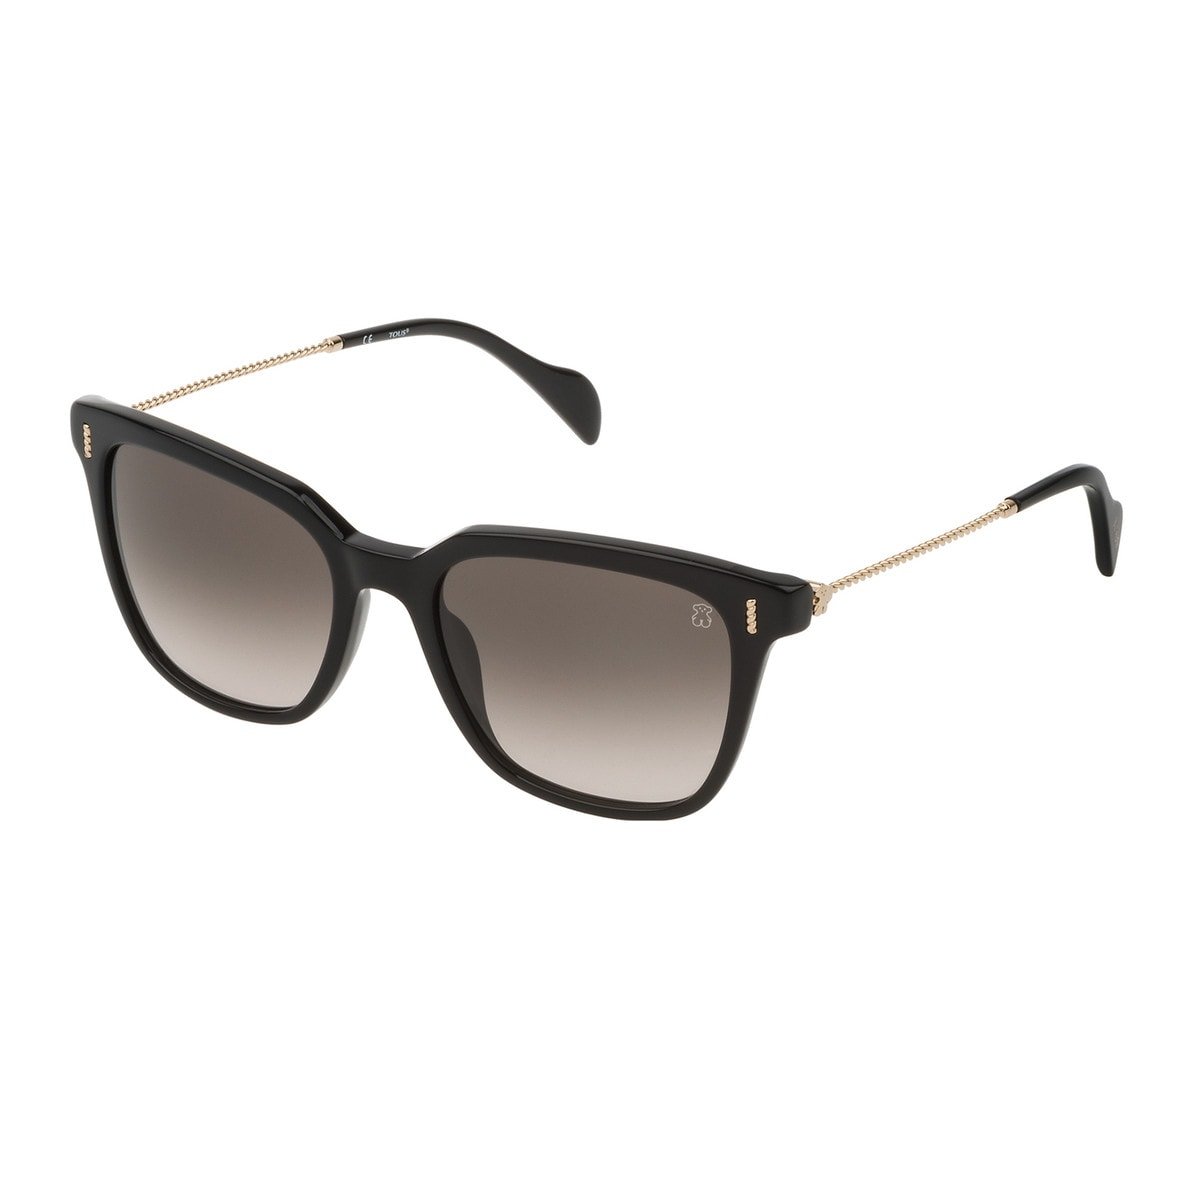 Black Acetate Braided Squared Sunglasses